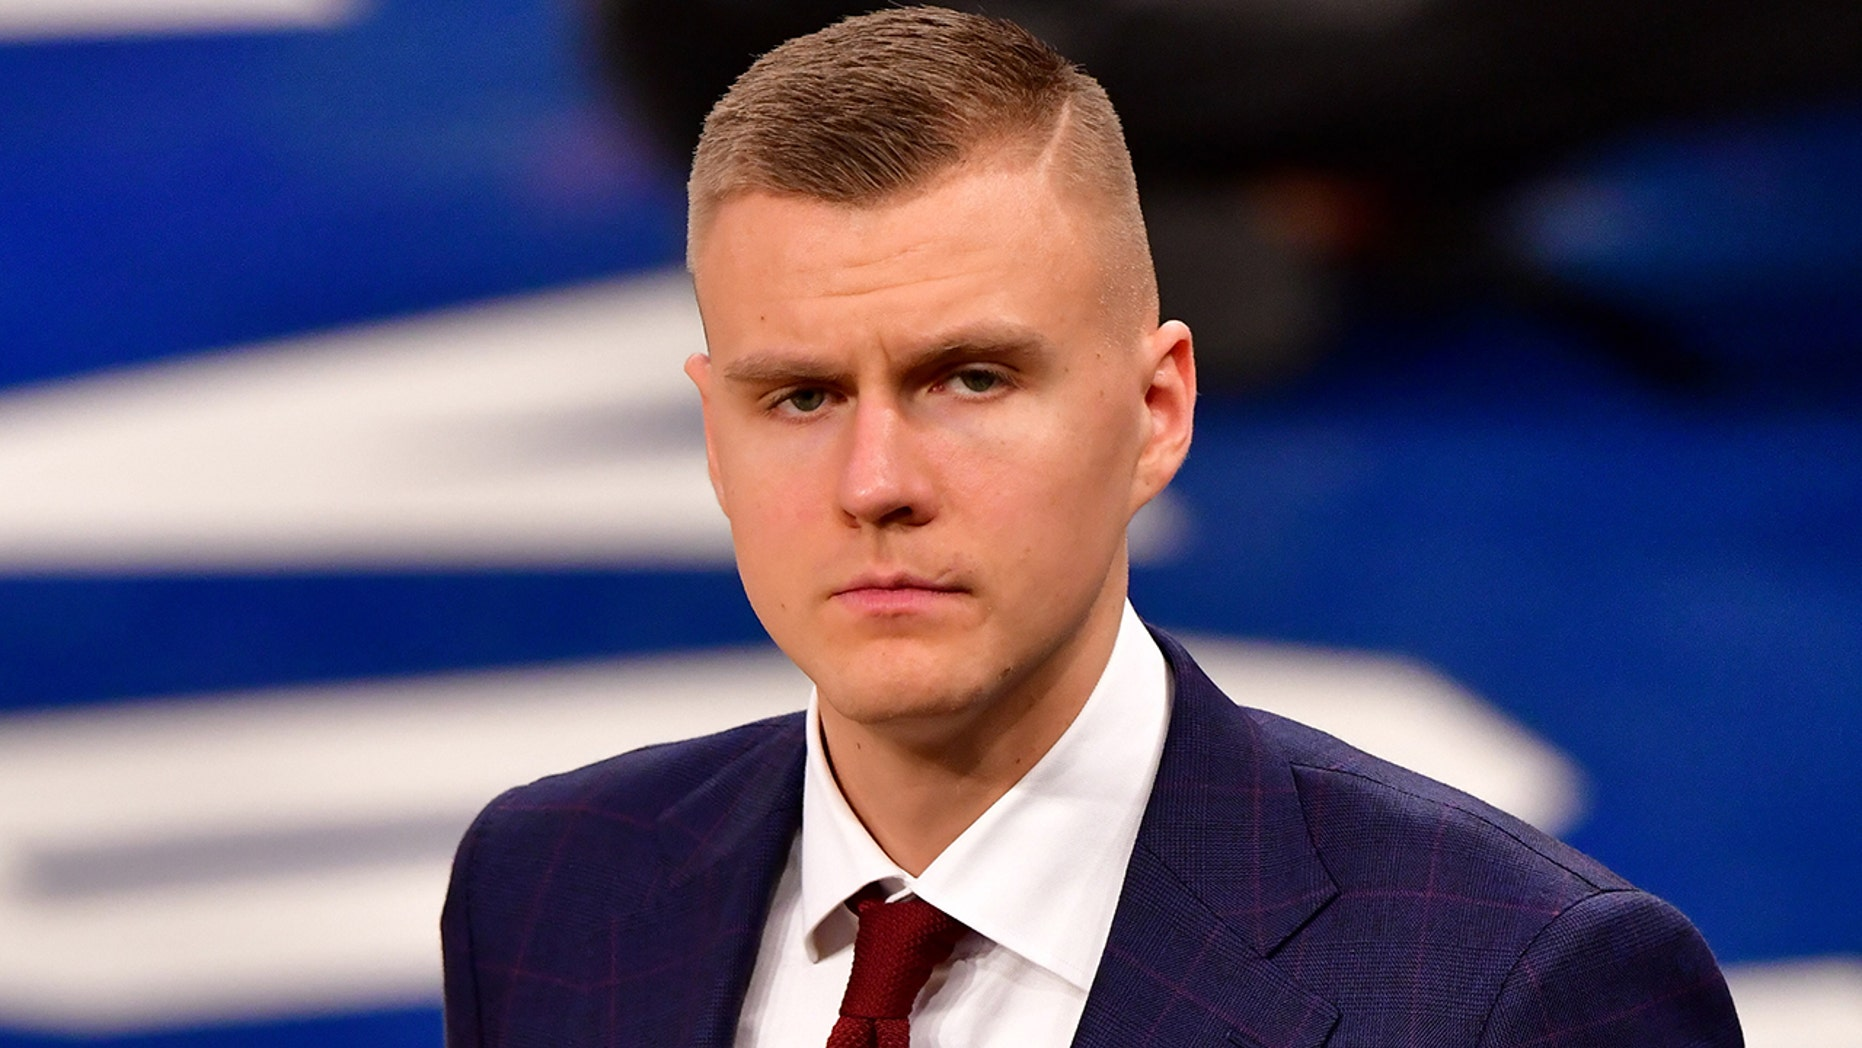 Knicks told Mavericks that Kristaps Porzingis faced 'extortion' attempt, not rape allegation